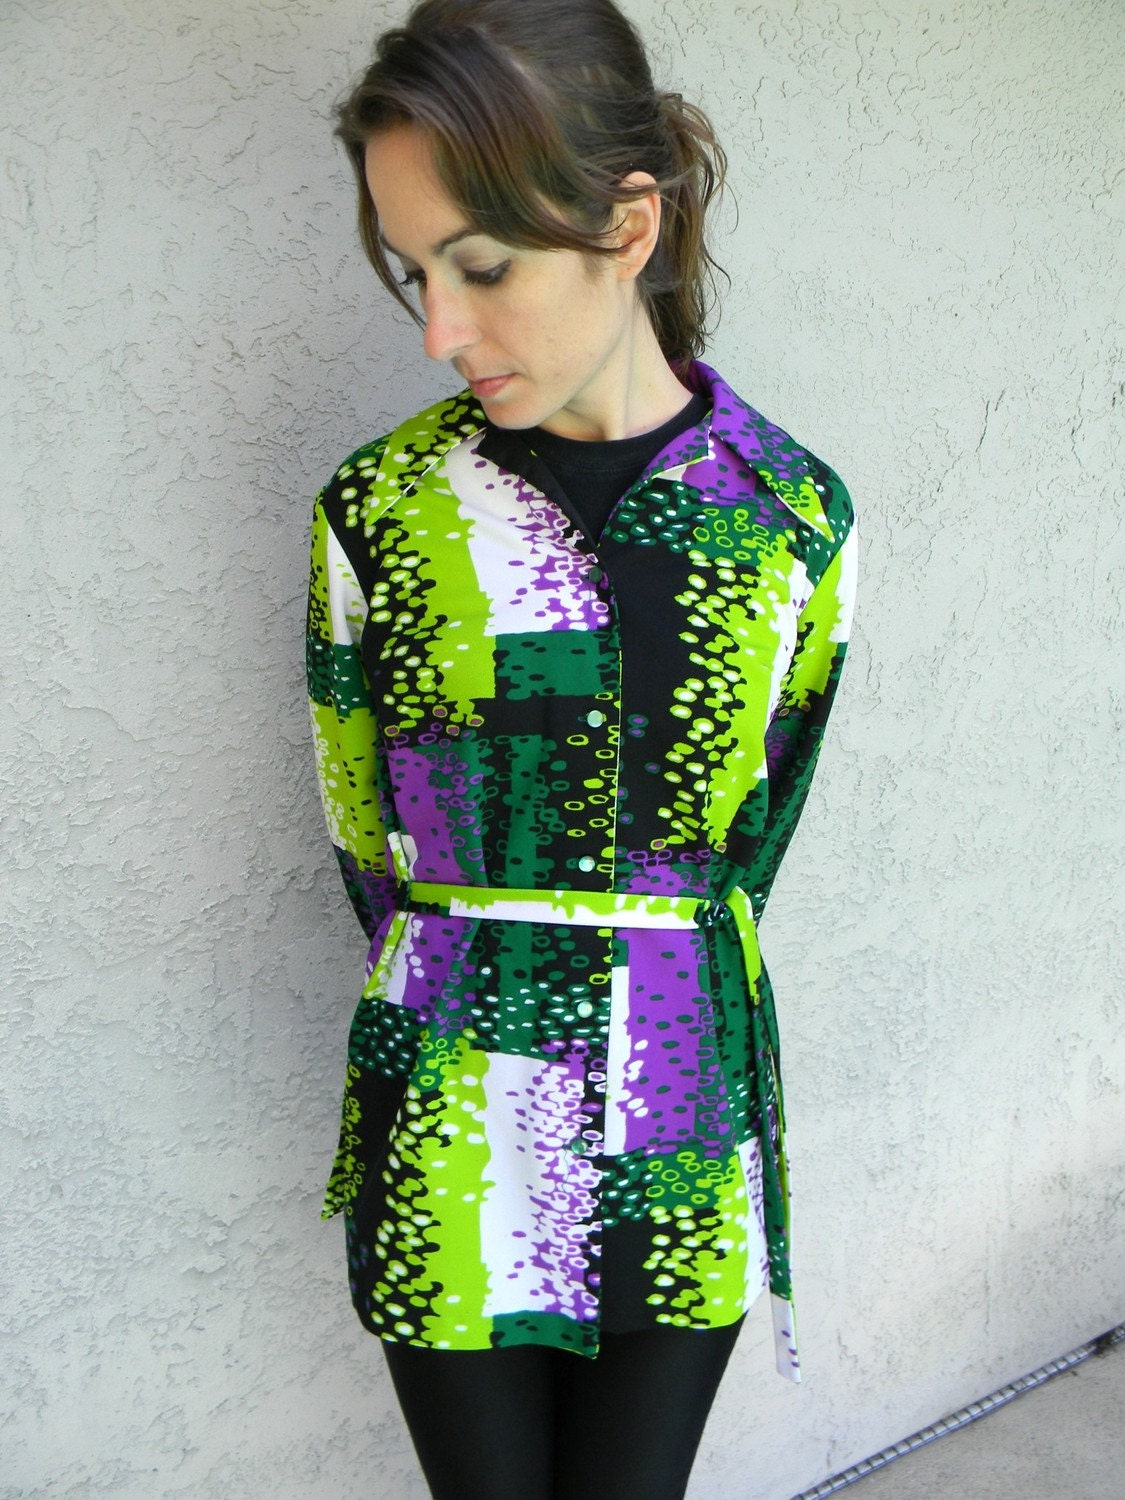 Technicolor Polyester Princess - Ultra Funky Vintage 70s Polyester Blouse/Mini Dress in Cool Abstract Electric Lime Green, Forest Green, White, Black, and Deep Purple - Double Knit til you Die